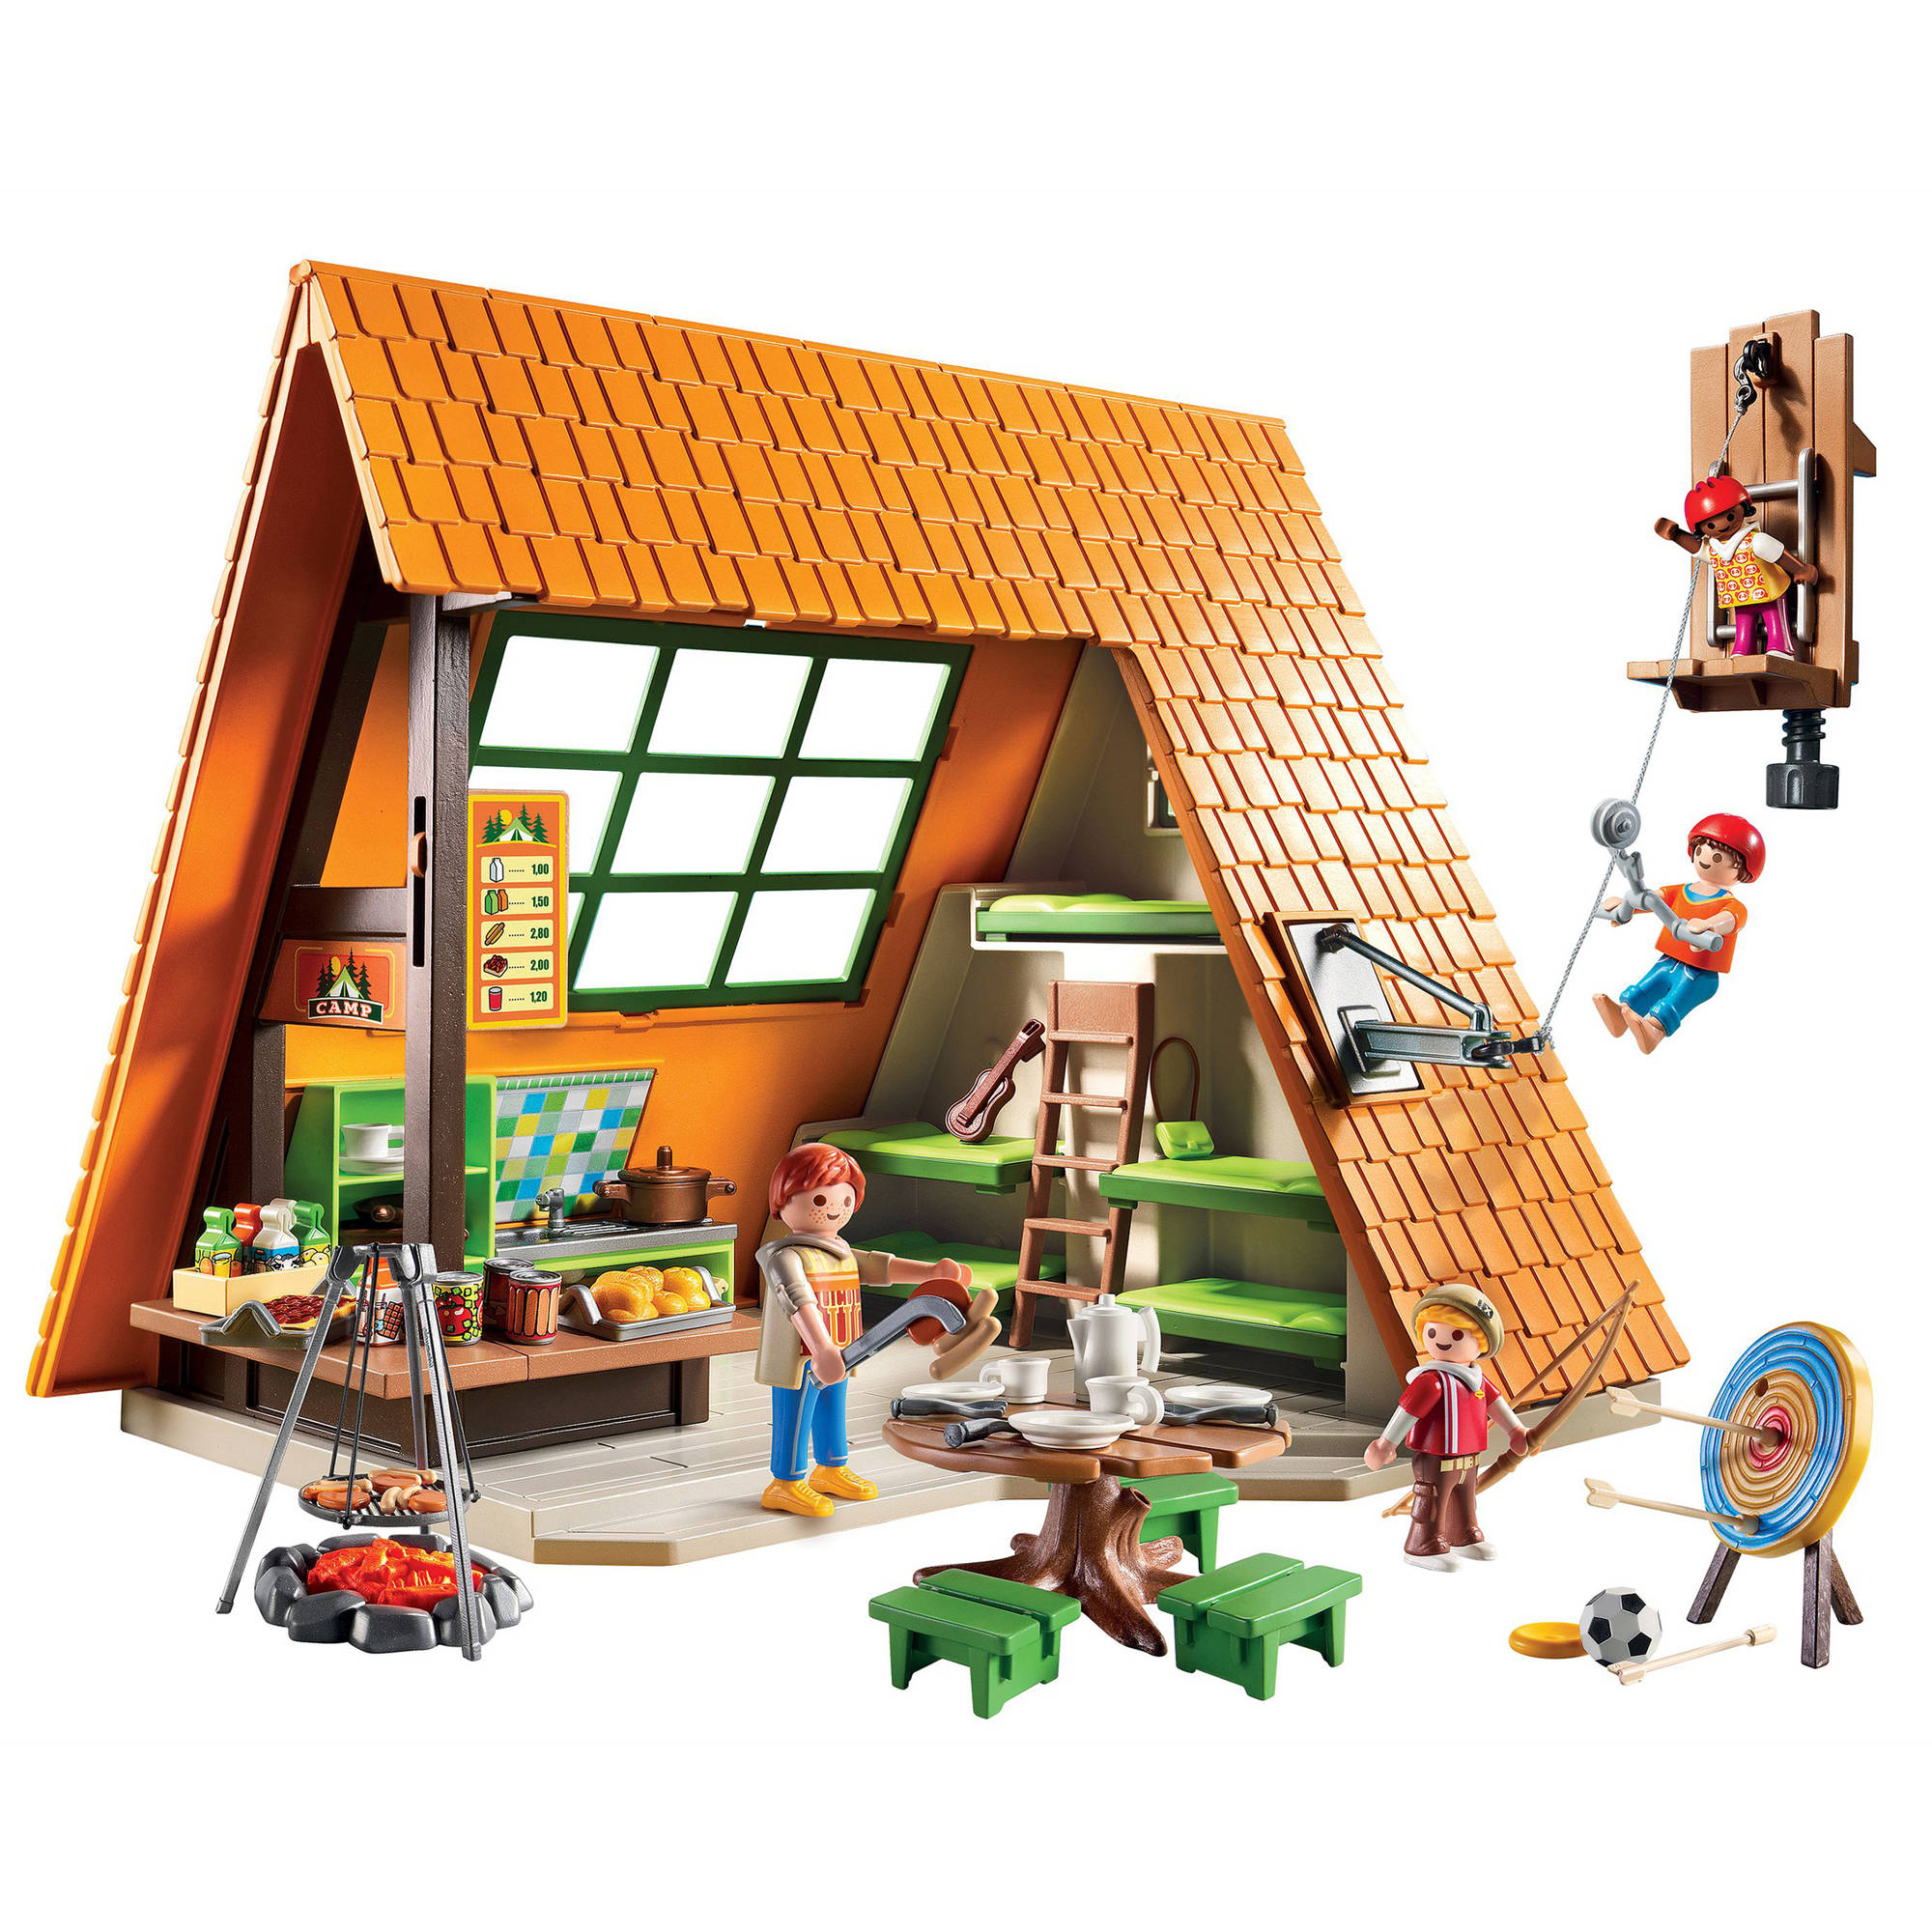 Playmobil Camping Lodge Image 2 of 2